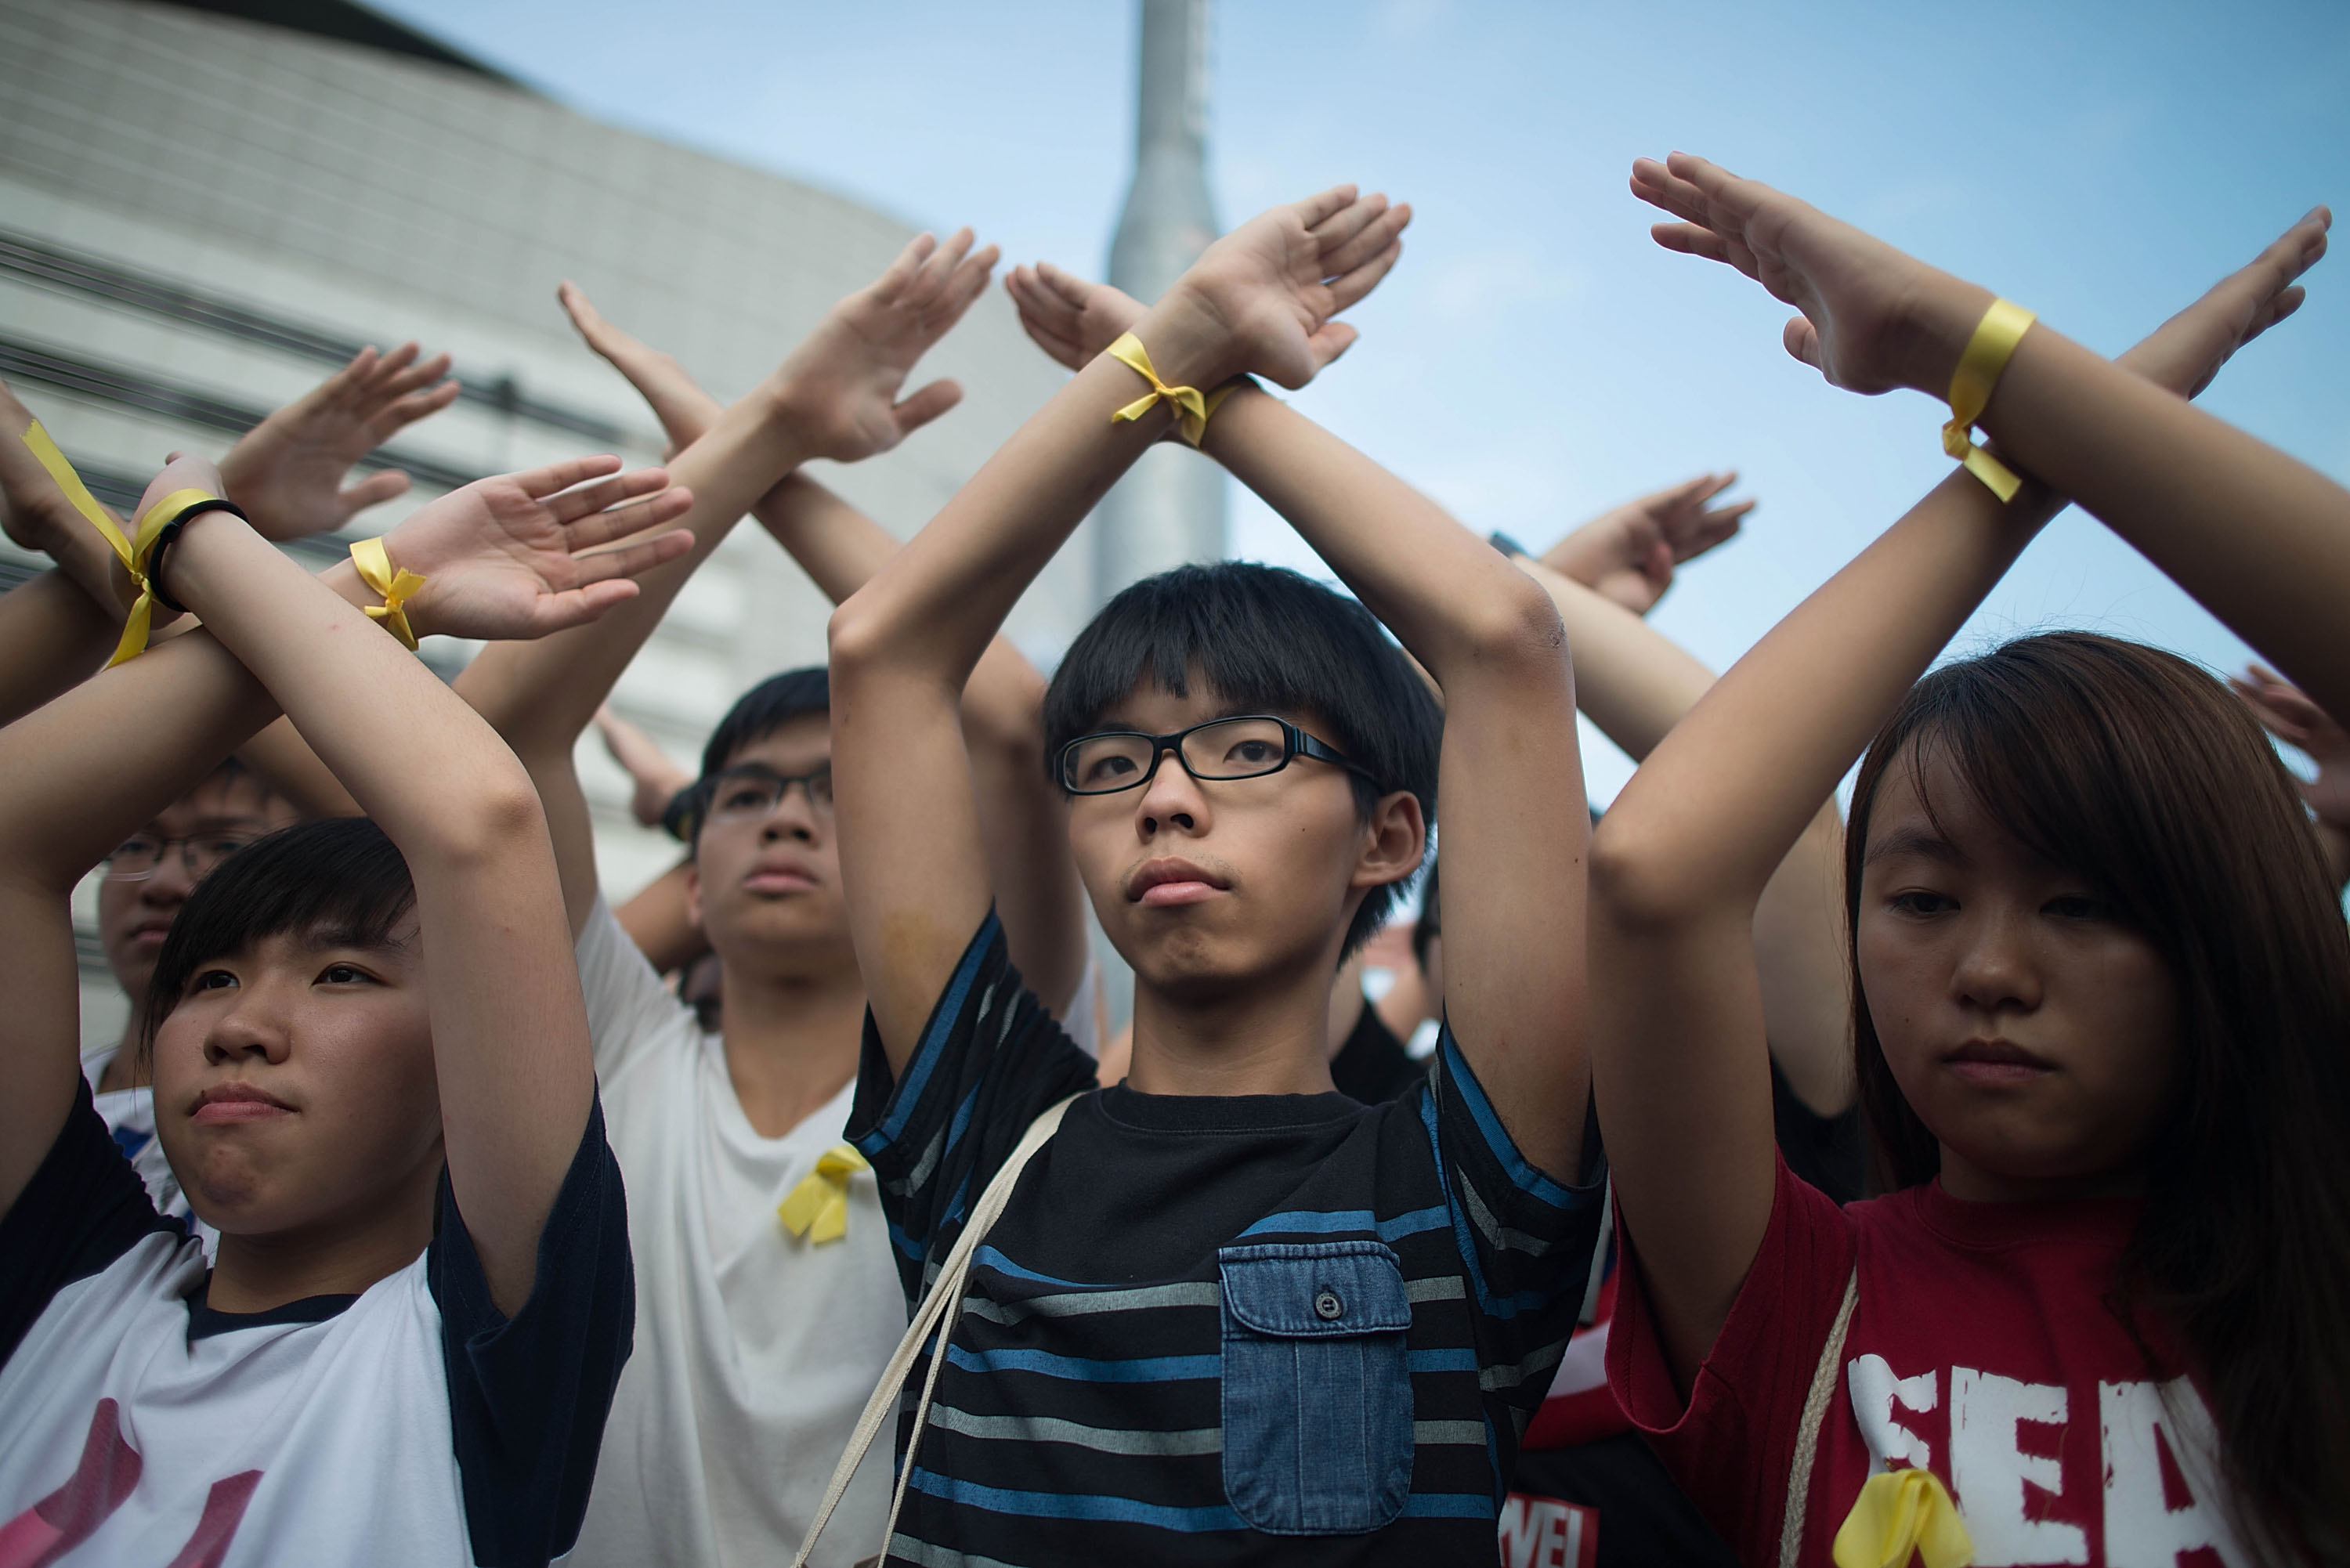 Student pro-democracy group Scholarism convenor Joshua Wong (C) makes a gesture at the Flag Raising Ceremony at Golden Bauhinia Square on October 1, 2014 in Hong Kong.